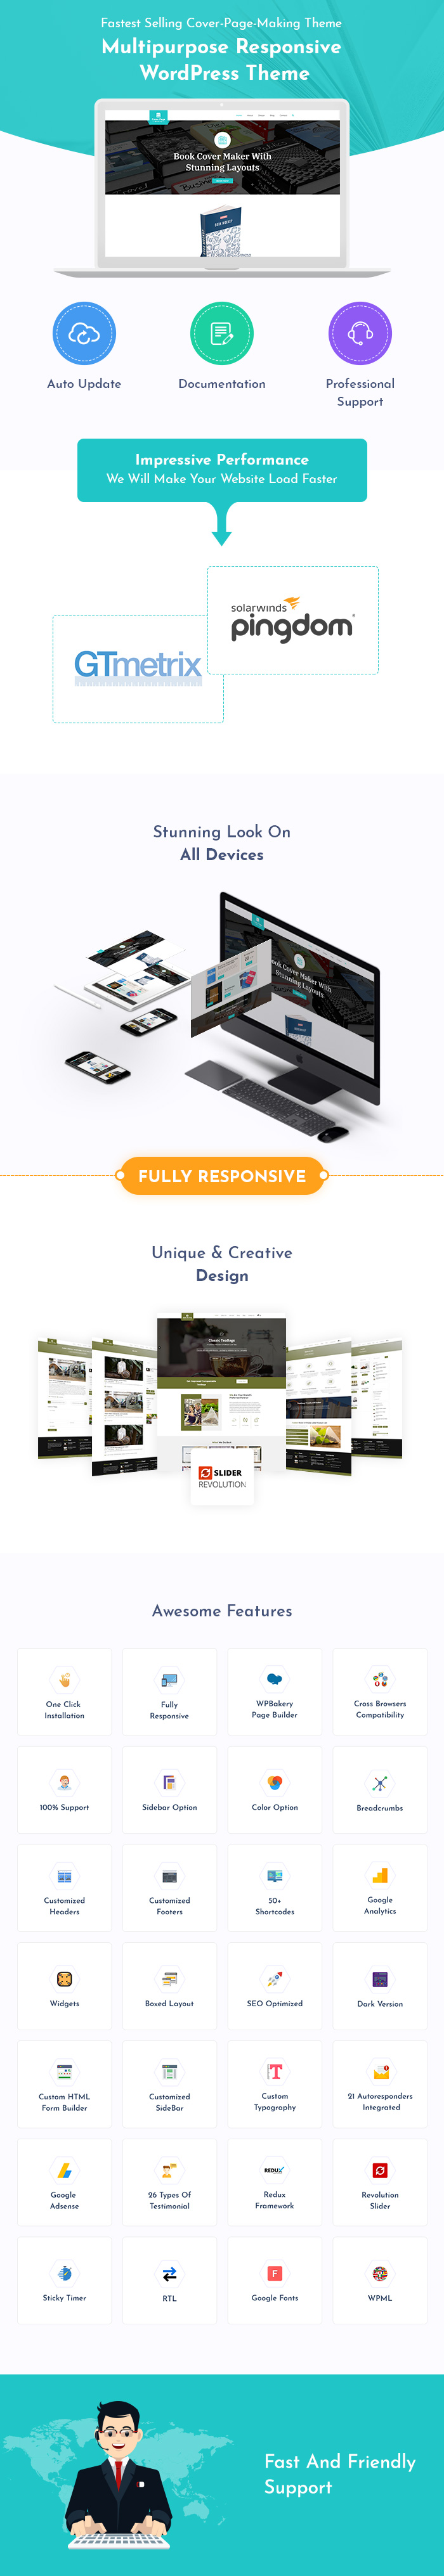 Cover Page Making WordPress Themes